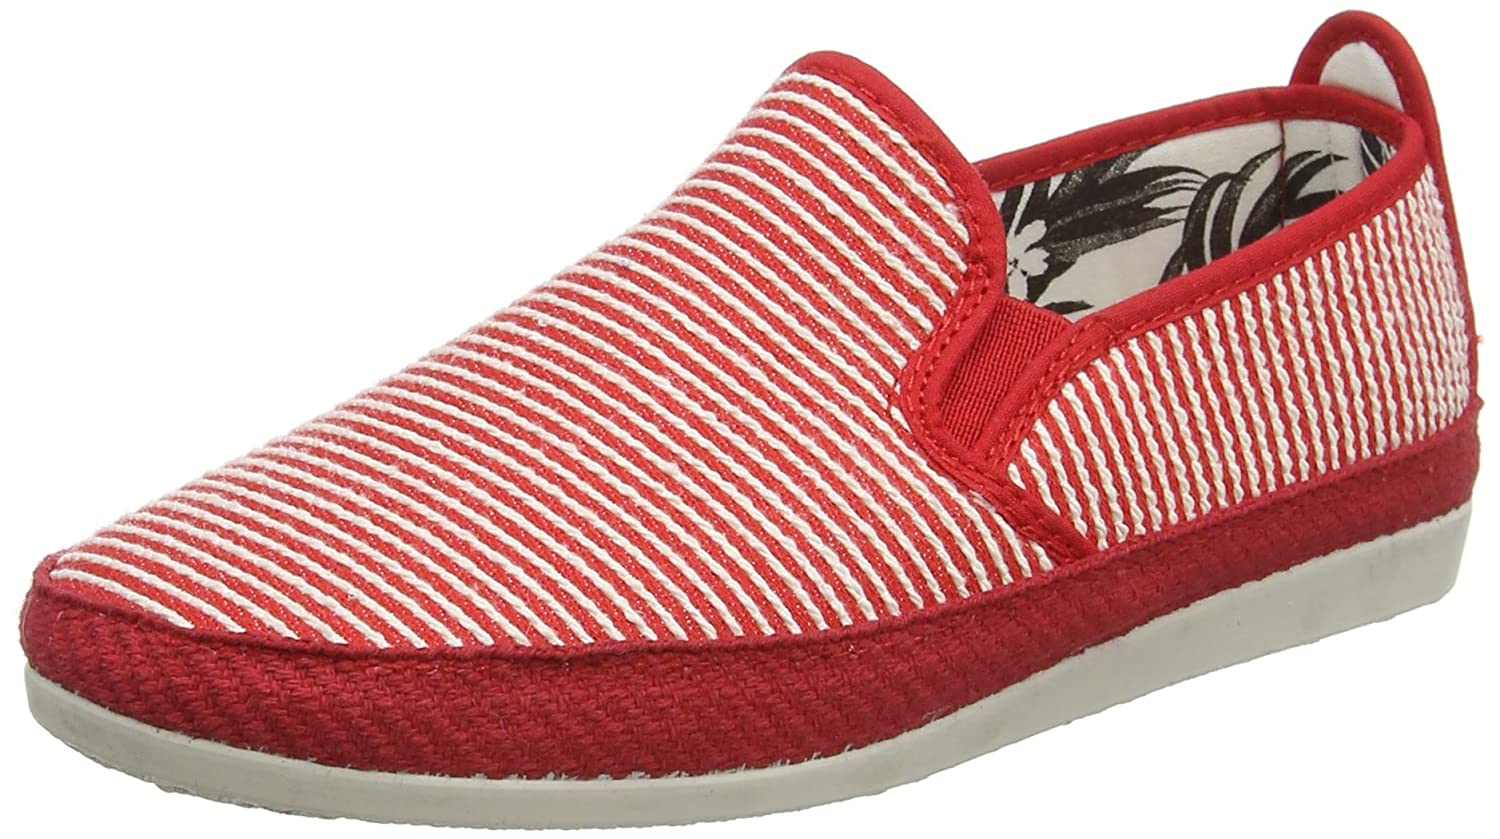 Flossy Femme Brieva, 000) Espadrilles Femme Rouge (Red B06XH2WWPY 000) 376f50e - conorscully.space